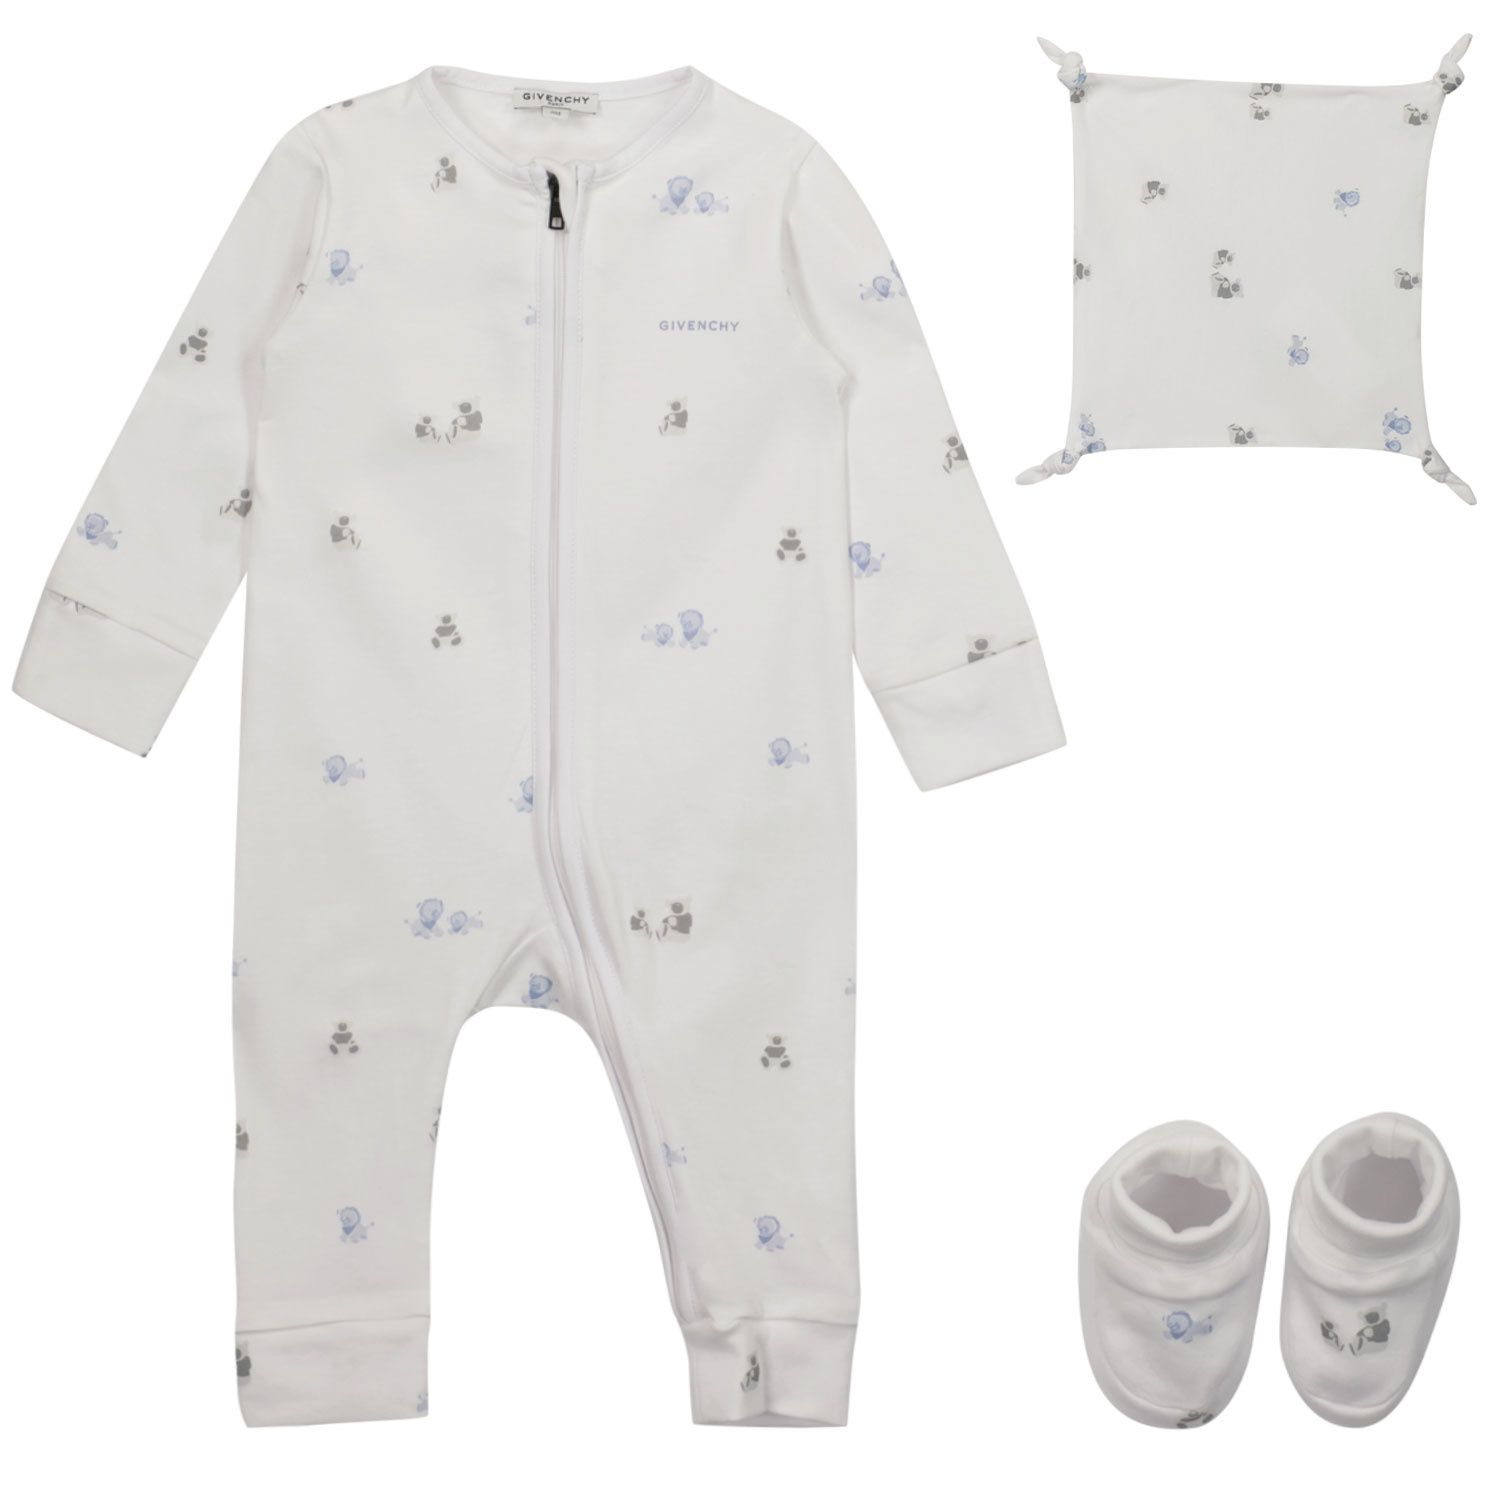 Picture of Givenchy H98107 baby playsuit white